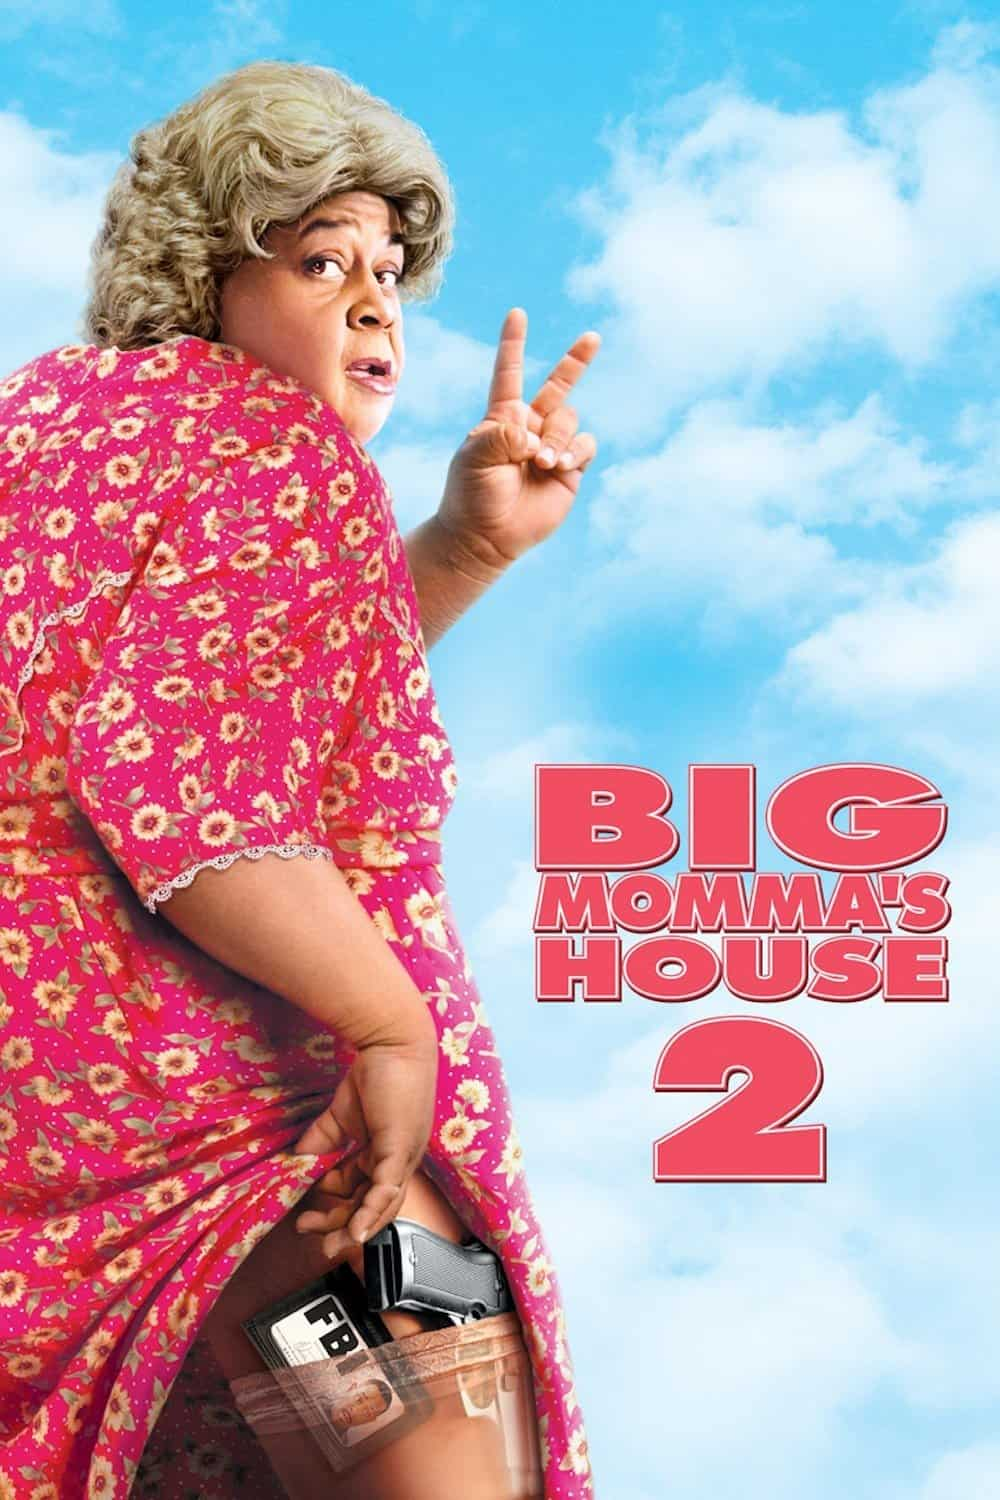 Big Momma's House 2, 2006